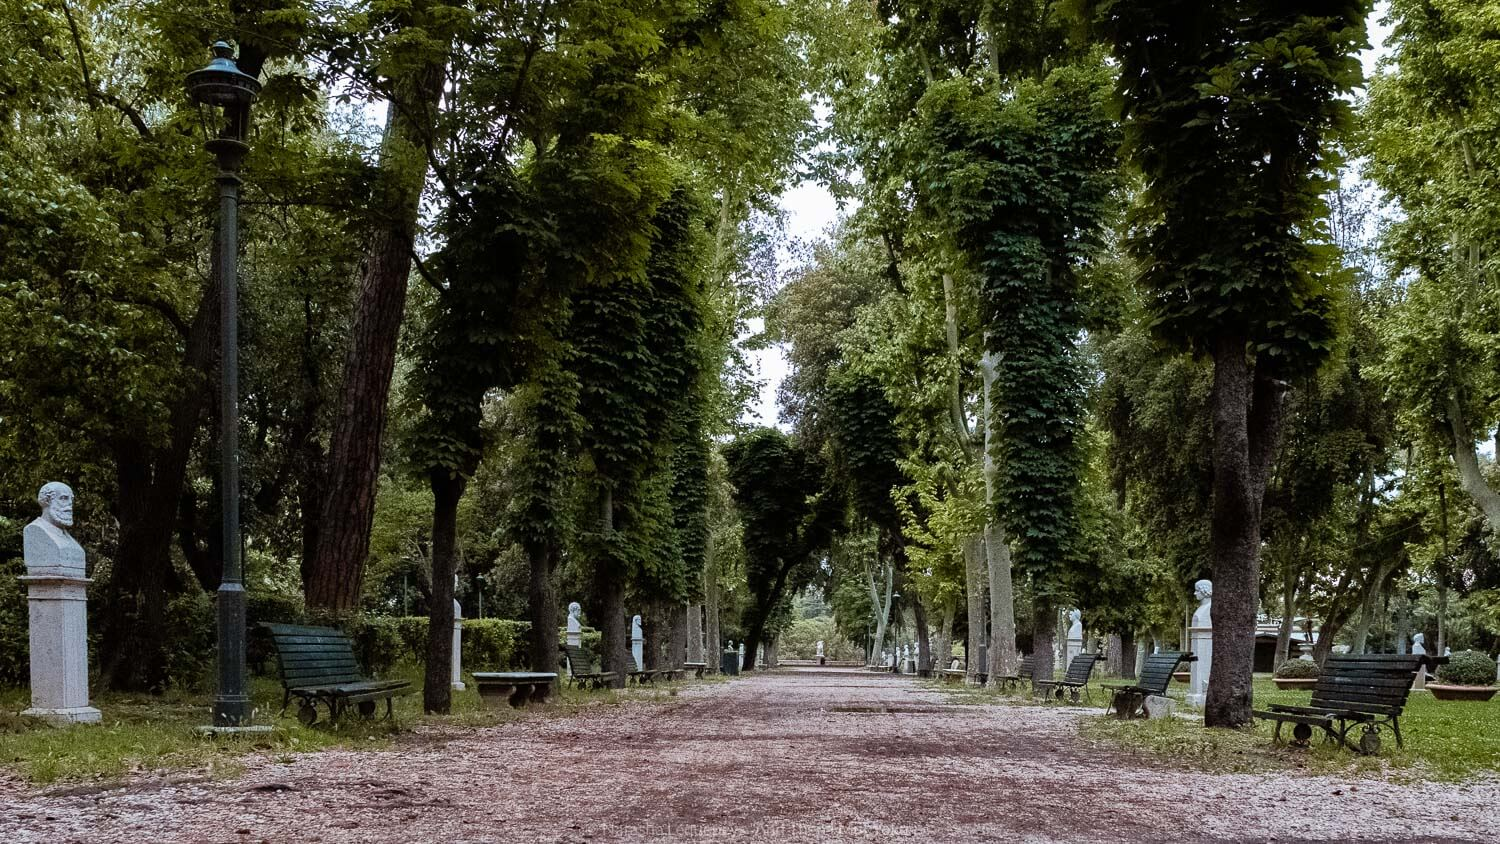 """The Borghese Park in Rome, Italy. Travel photography and guide by © Natasha Lequepeys for """"And Then I Met Yoko"""". #rome #italy #travelblog #travelphotography"""